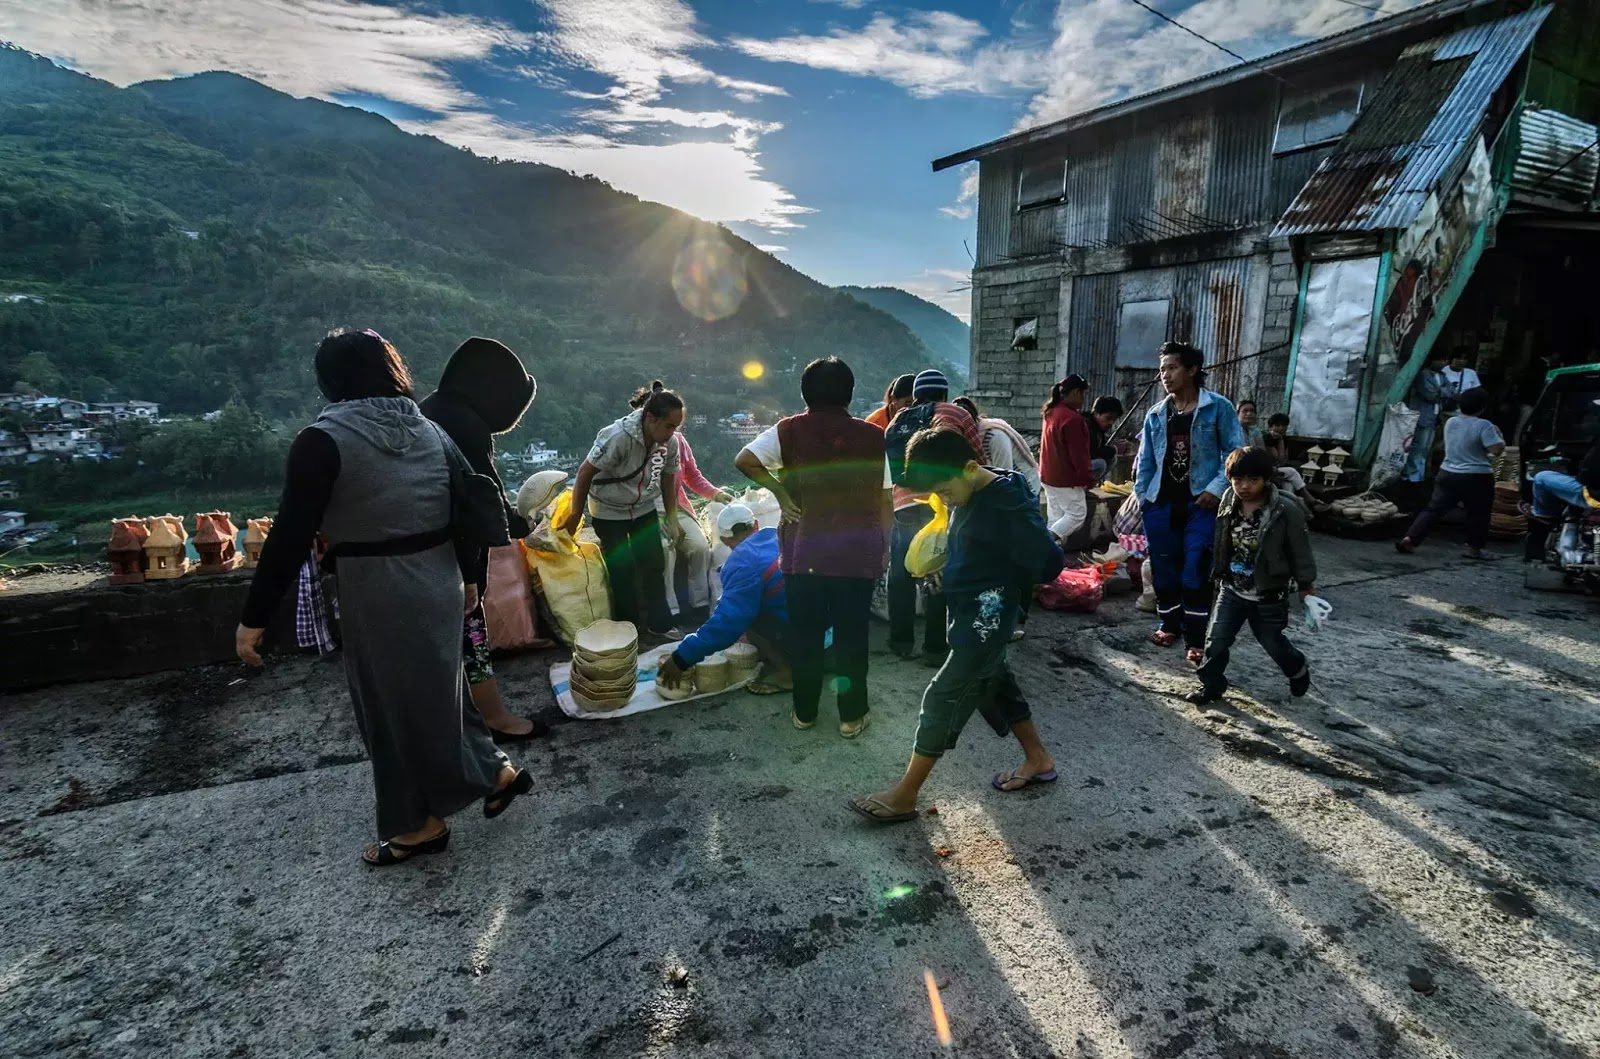 One Ifugao Morning Banaue Saturday Community Street Markt Cordillera Administrative Region Philippines